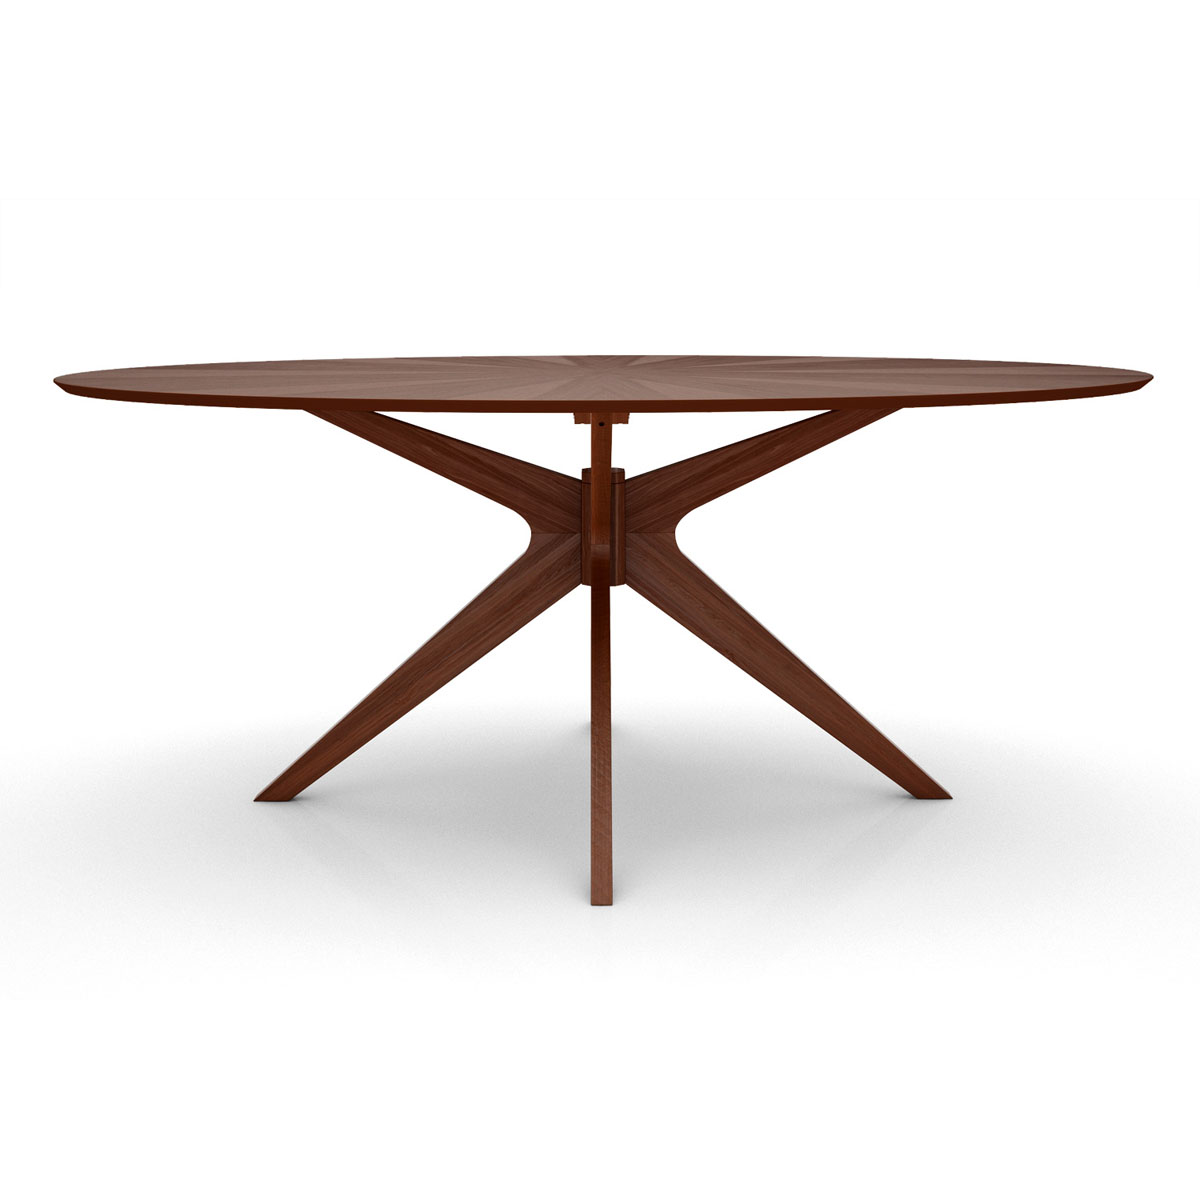 design dining maxwell table oval products collection artesanos